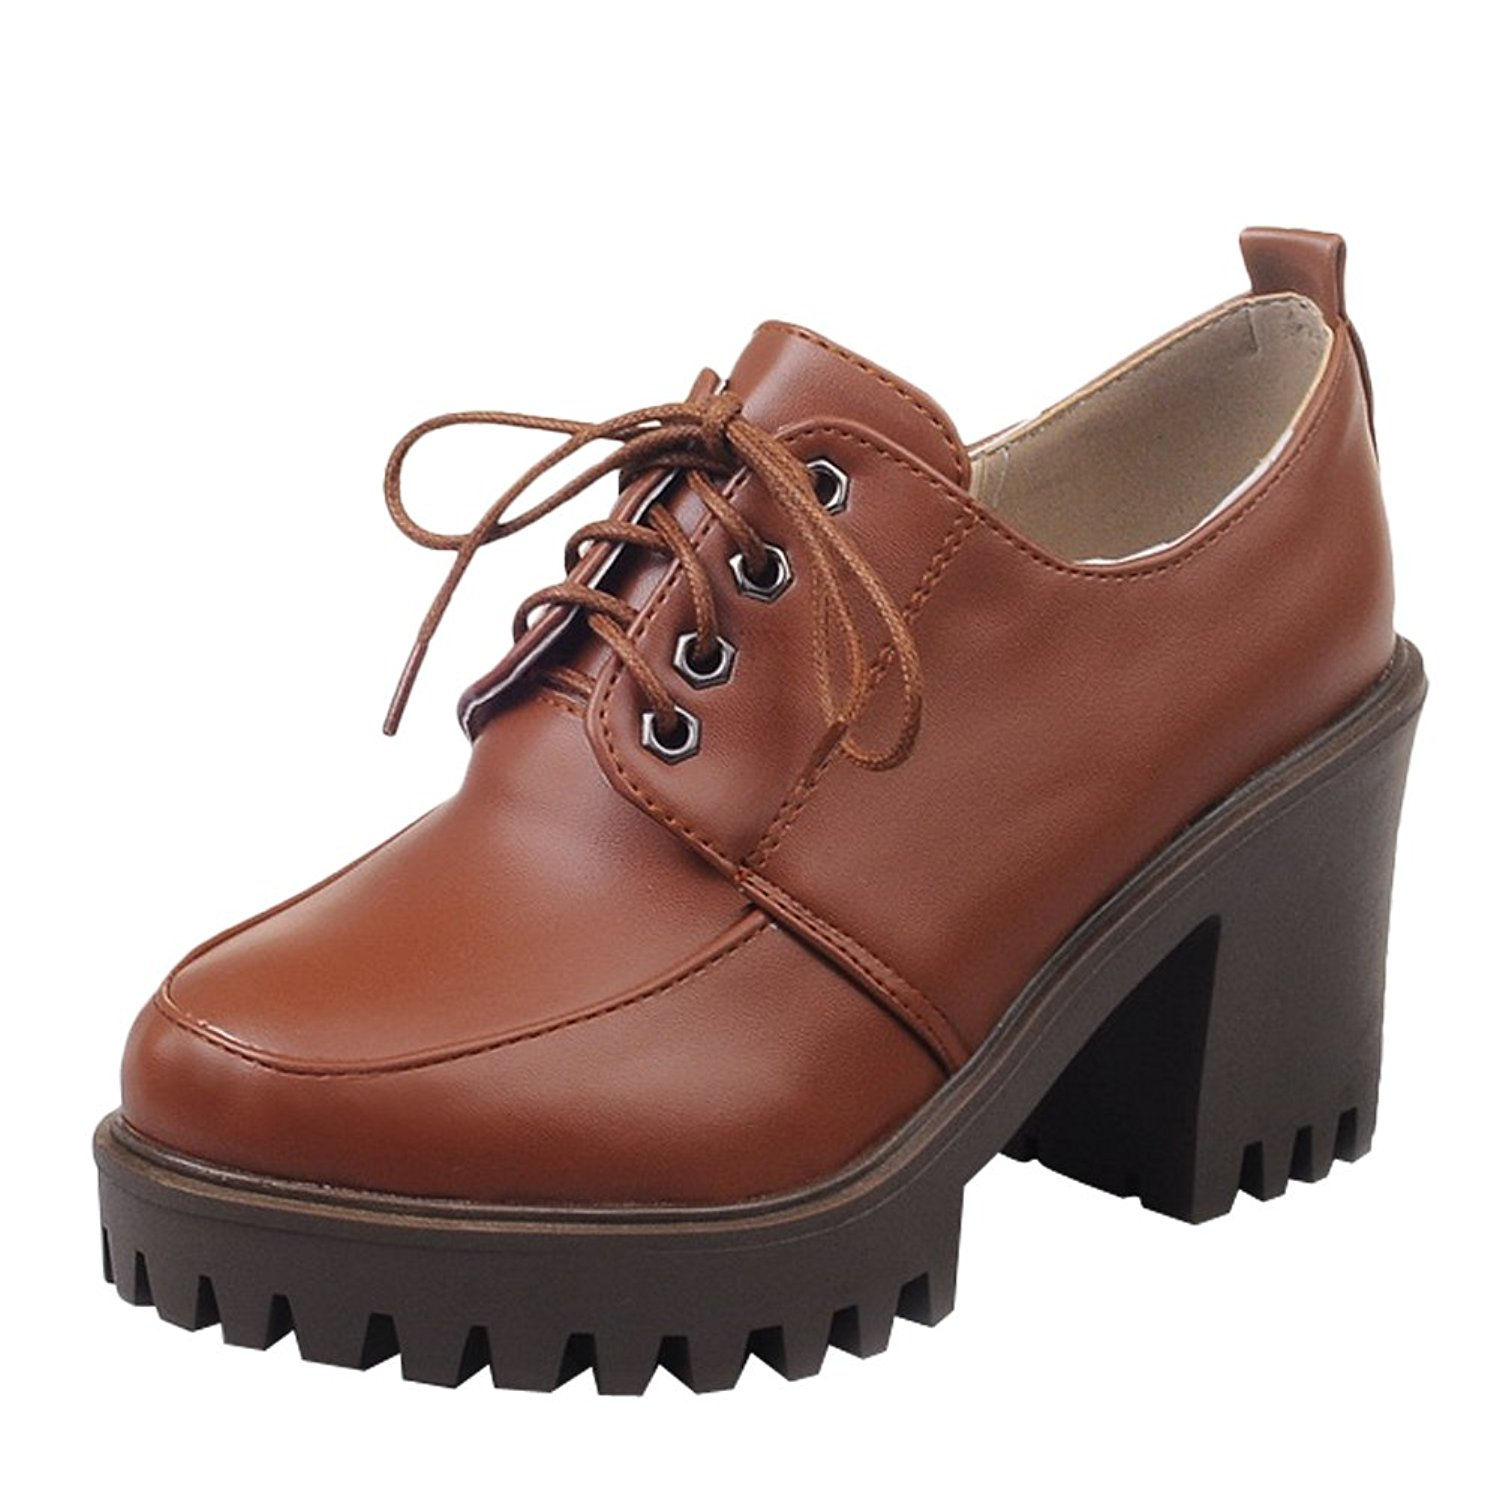 b59ca0e1a9b Get Quotations · Latasa Womens Lace up Oxford High Heels